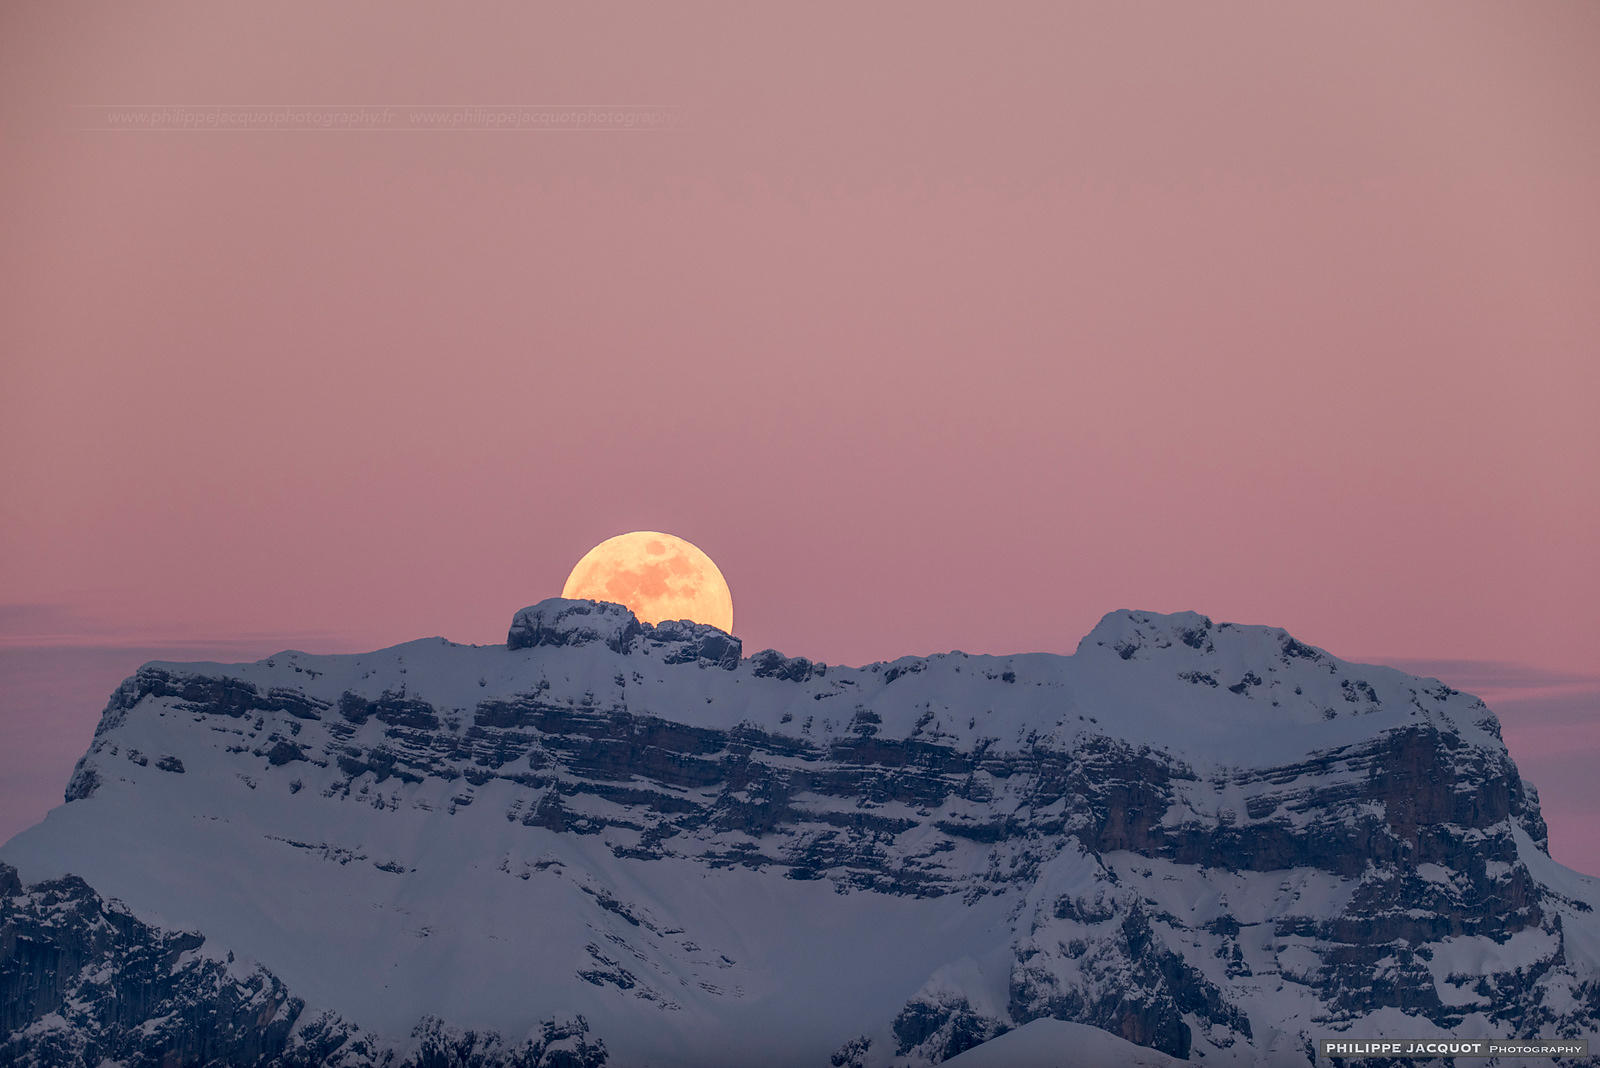 Fullmoon of the snows - Annecy Semnoz